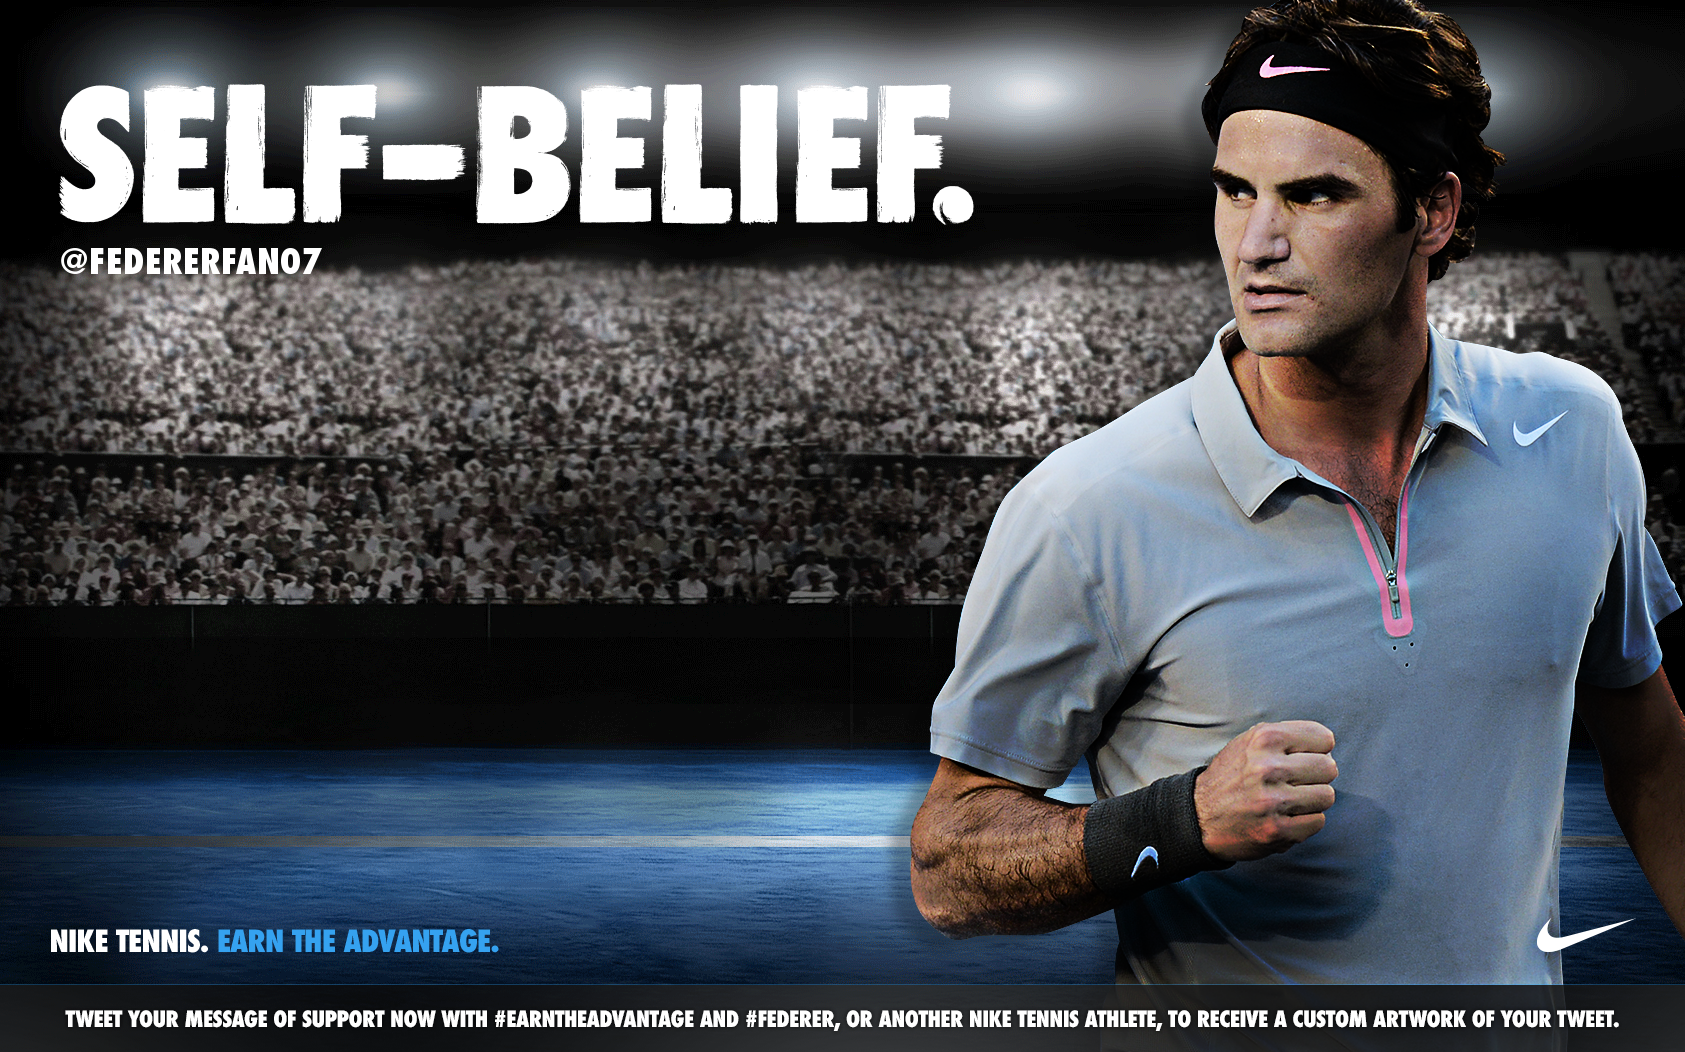 Wallpapers FedFan 1685x1052